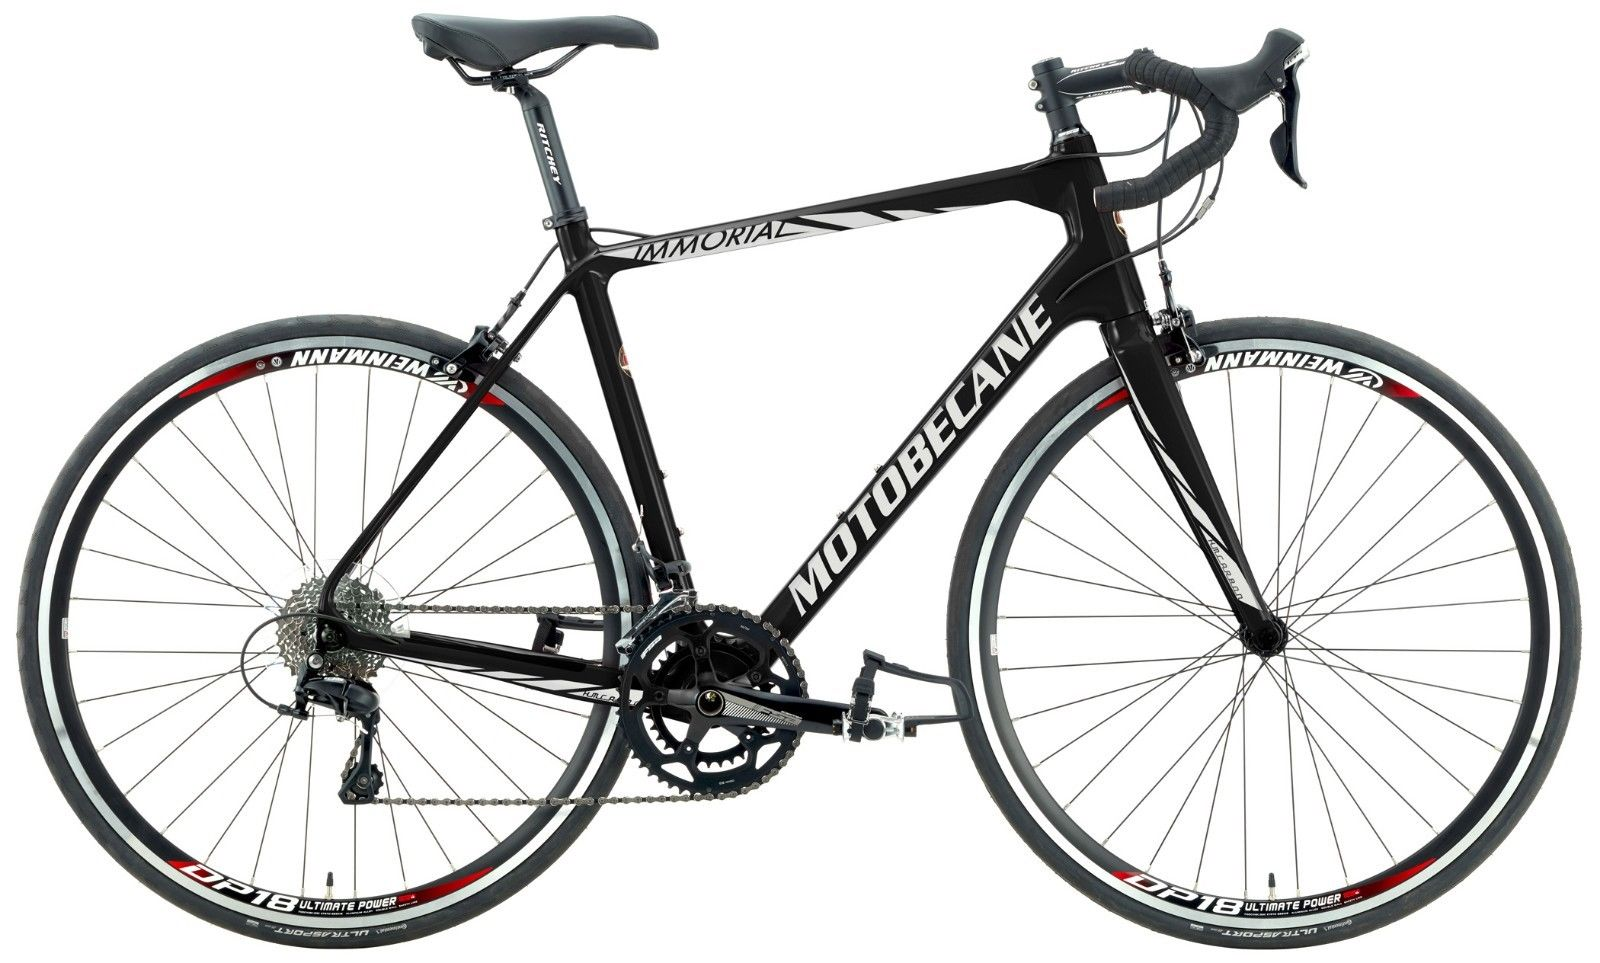 Bikes 2018 Motobecane Immortal Spirit Shimano 22 Speed Carbon Fiber Road Bike Image